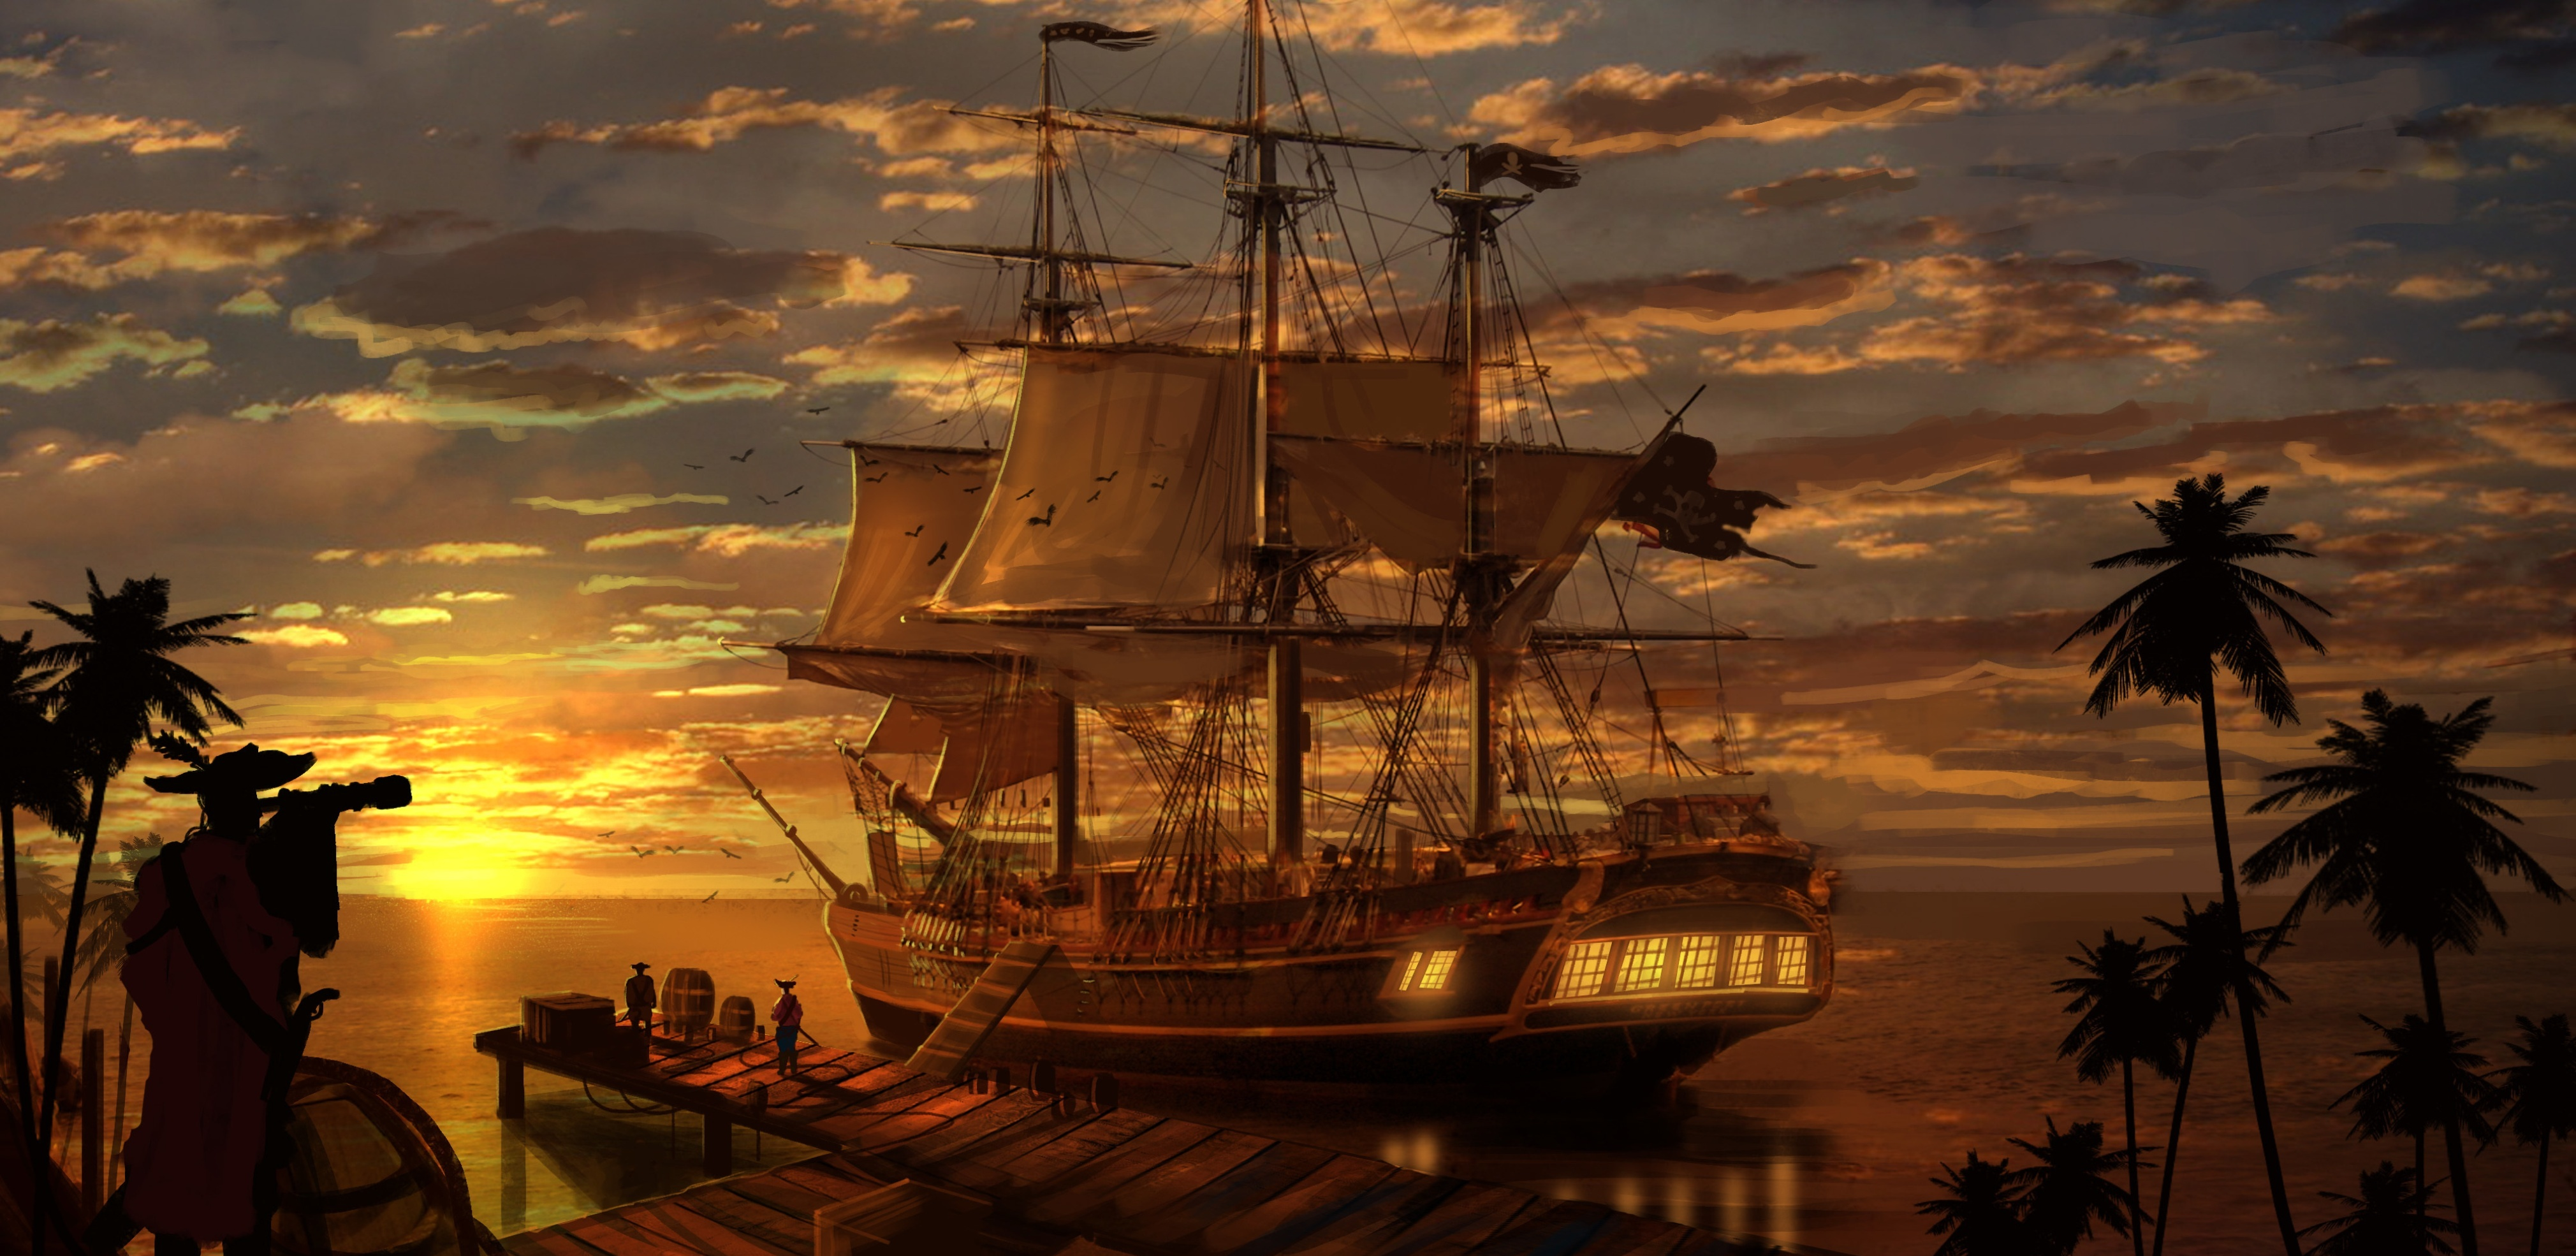 pirate ship computer wallpapers - photo #20